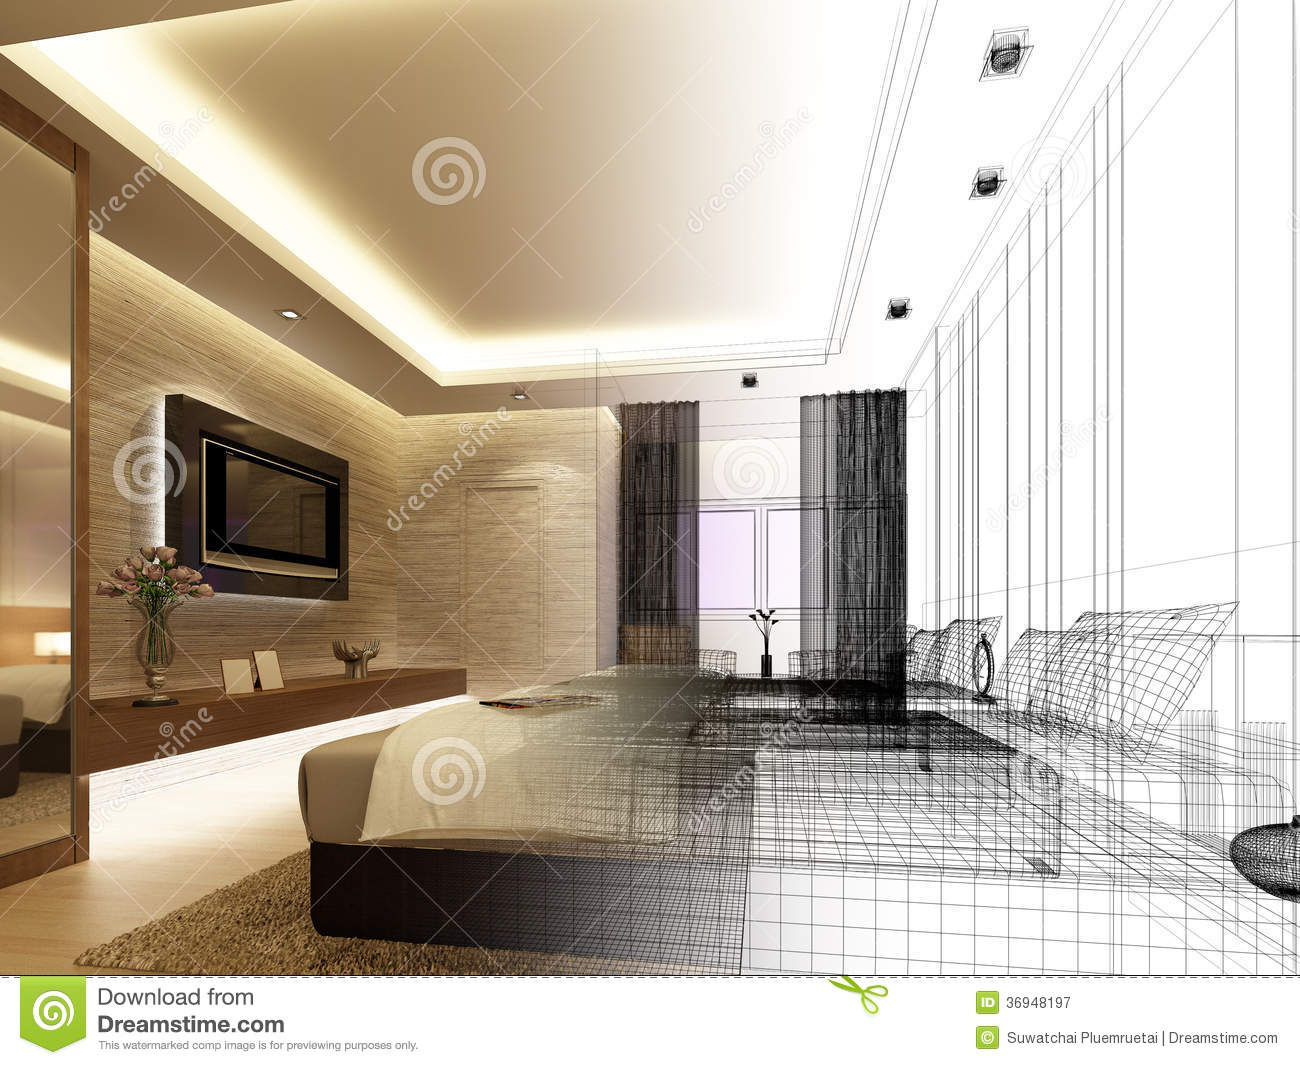 Sketch design of interior bedroom stock illustration for Interior designs drawings